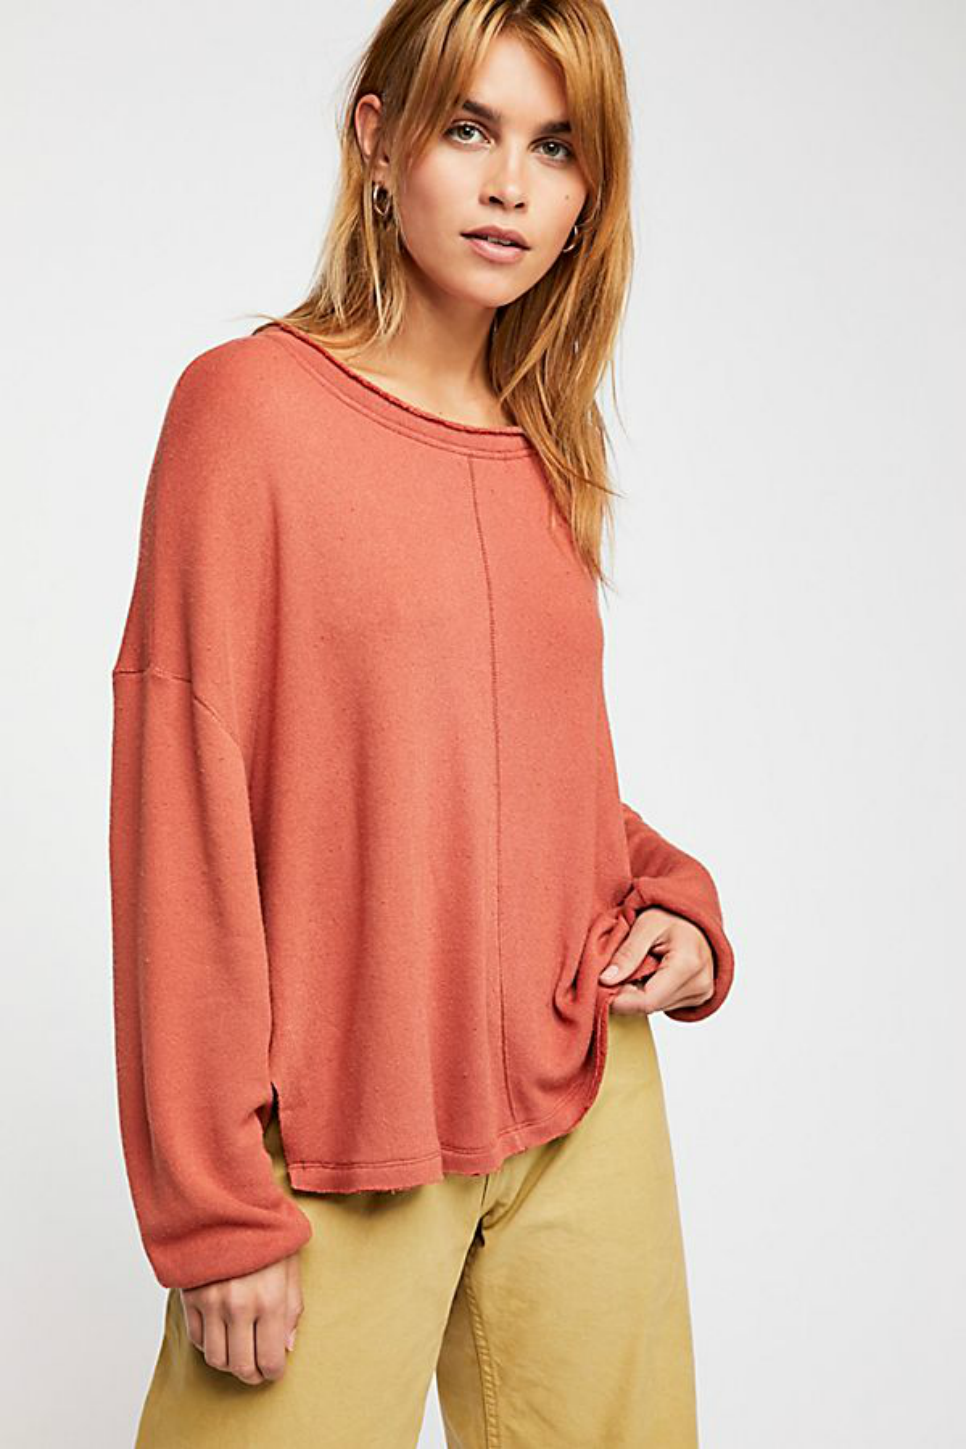 Free People - Be Good Terry Pullover - Mojave Sands - Front